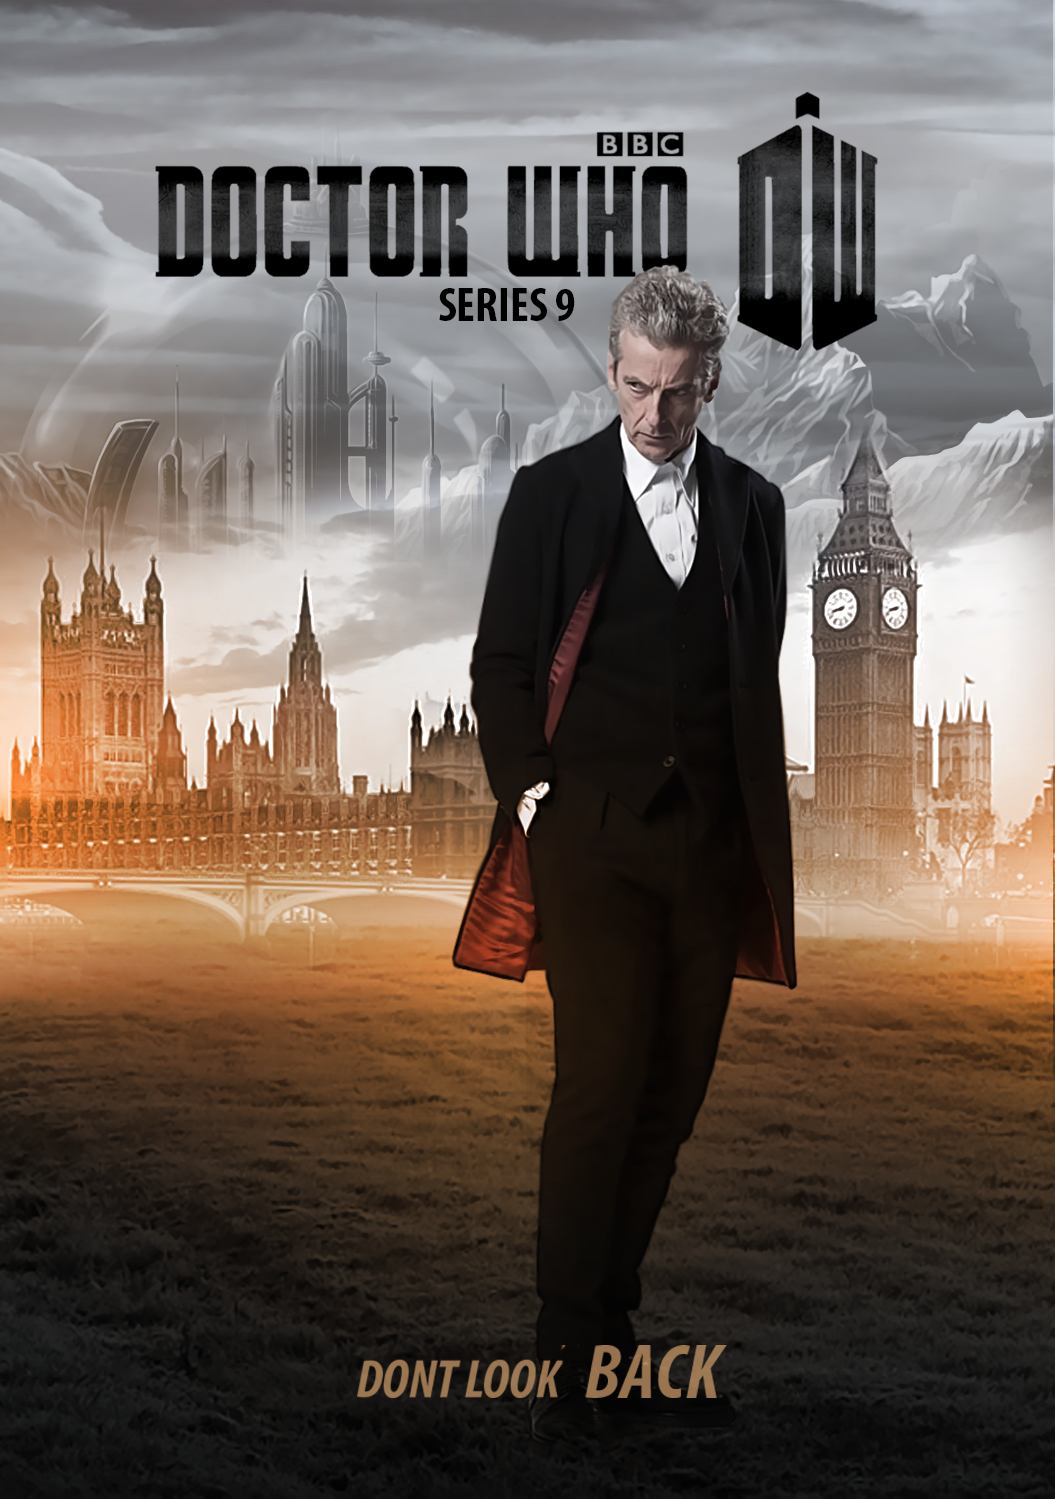 Doctor who series 9 poster by philpaint on deviantart